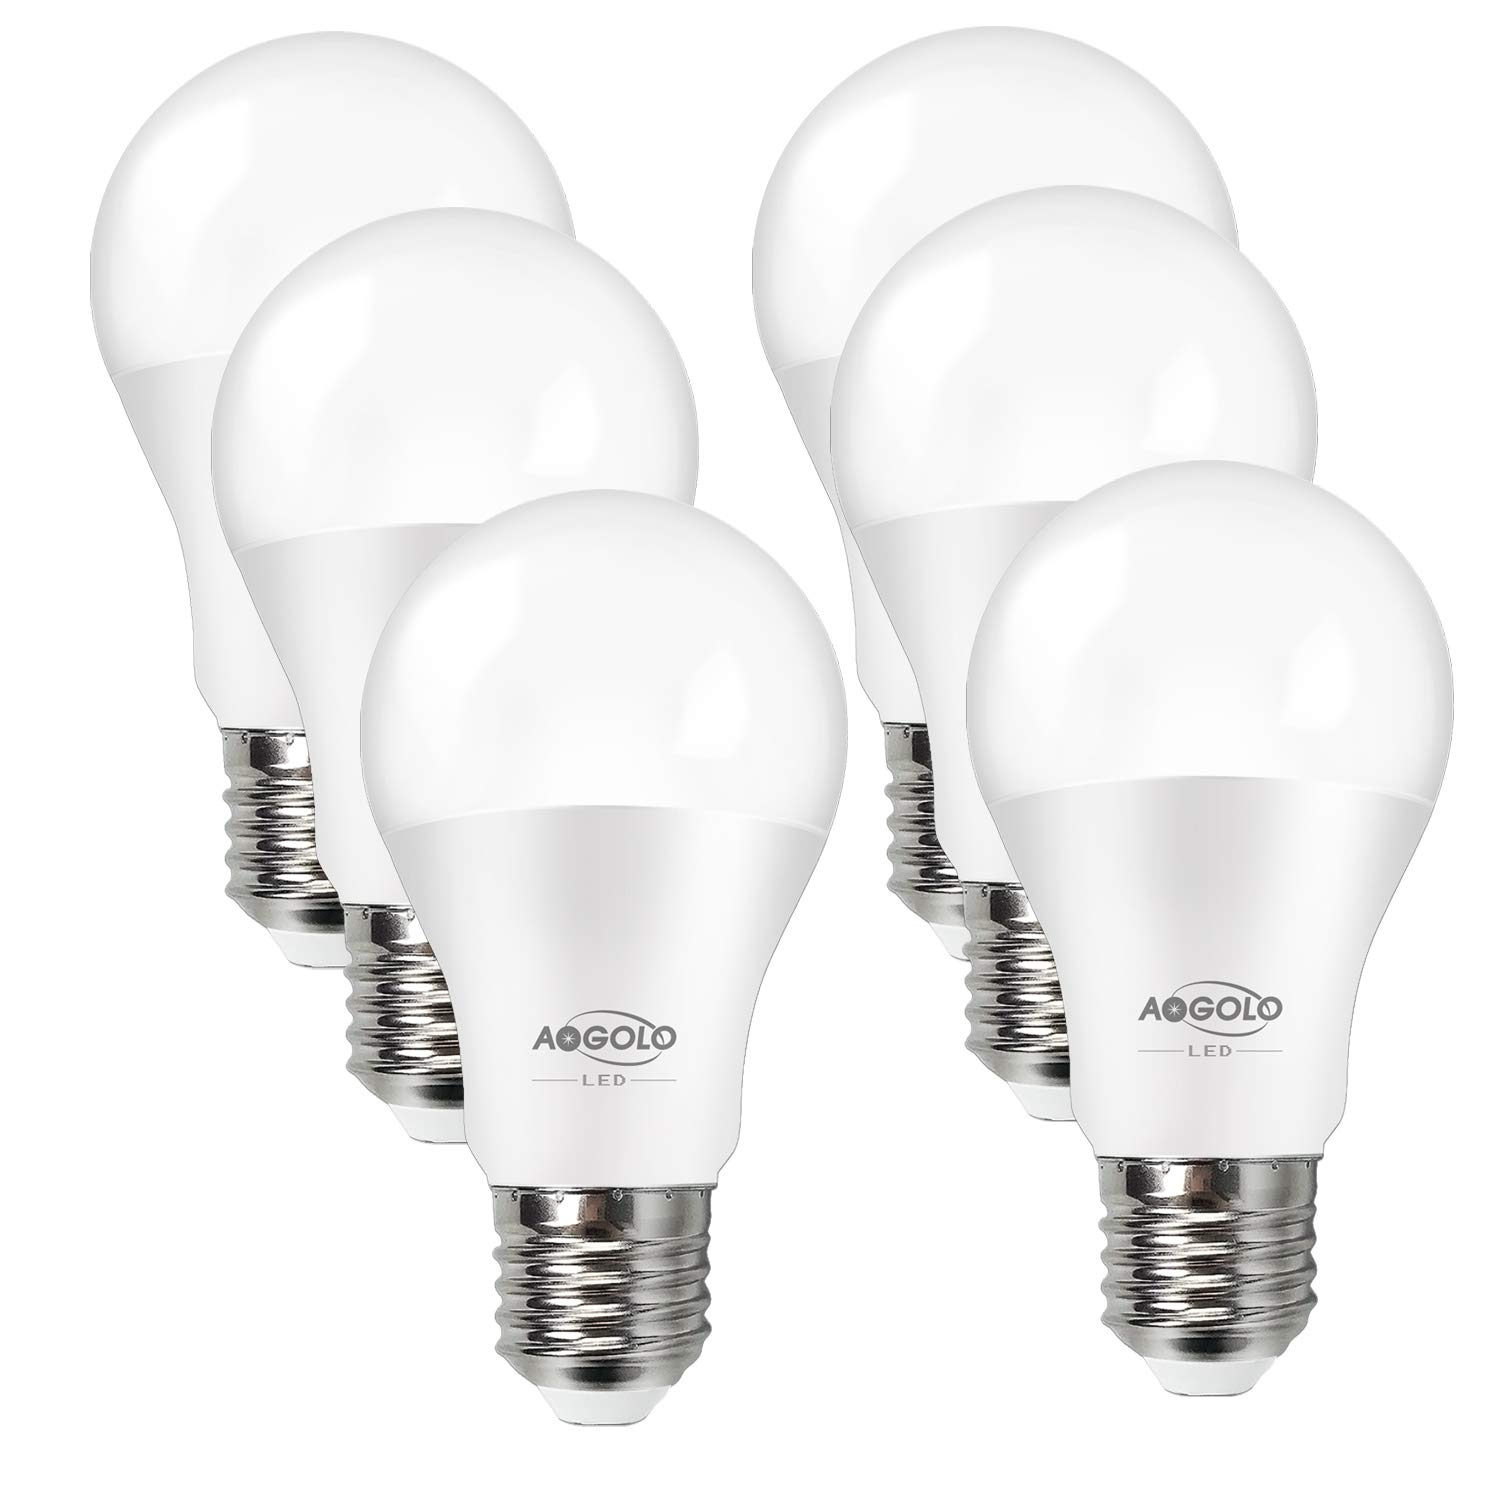 AOGOLO A19 LED Light Bulb,60 Watt Equivalent,Efficient 9W LED Bulbs,810 Lumens,2700K Soft White(Warm),E26 Medium Screw Base, Non Dimmable,LED Lights for Home,UL Listed,Standard Replacement,(6-Pack)